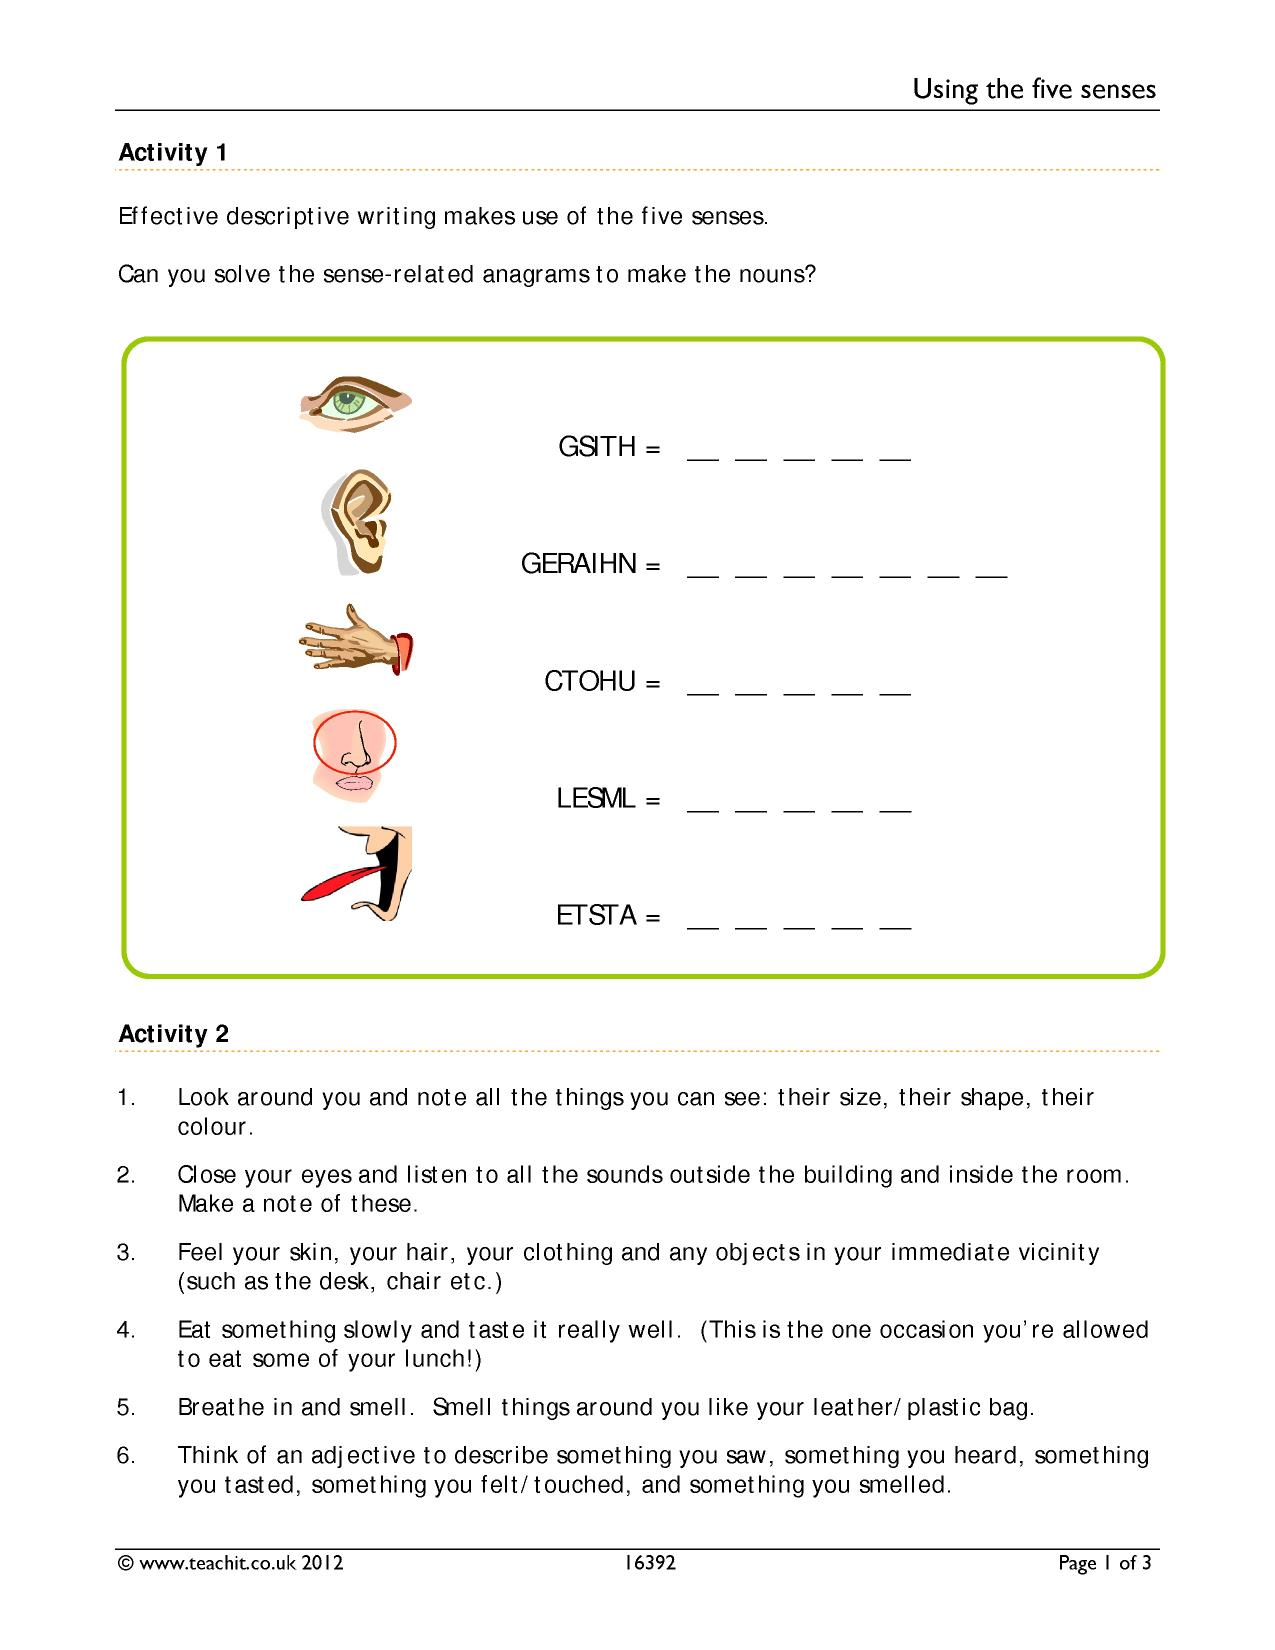 hight resolution of 5 Senses Worksheet Answers   Printable Worksheets and Activities for  Teachers